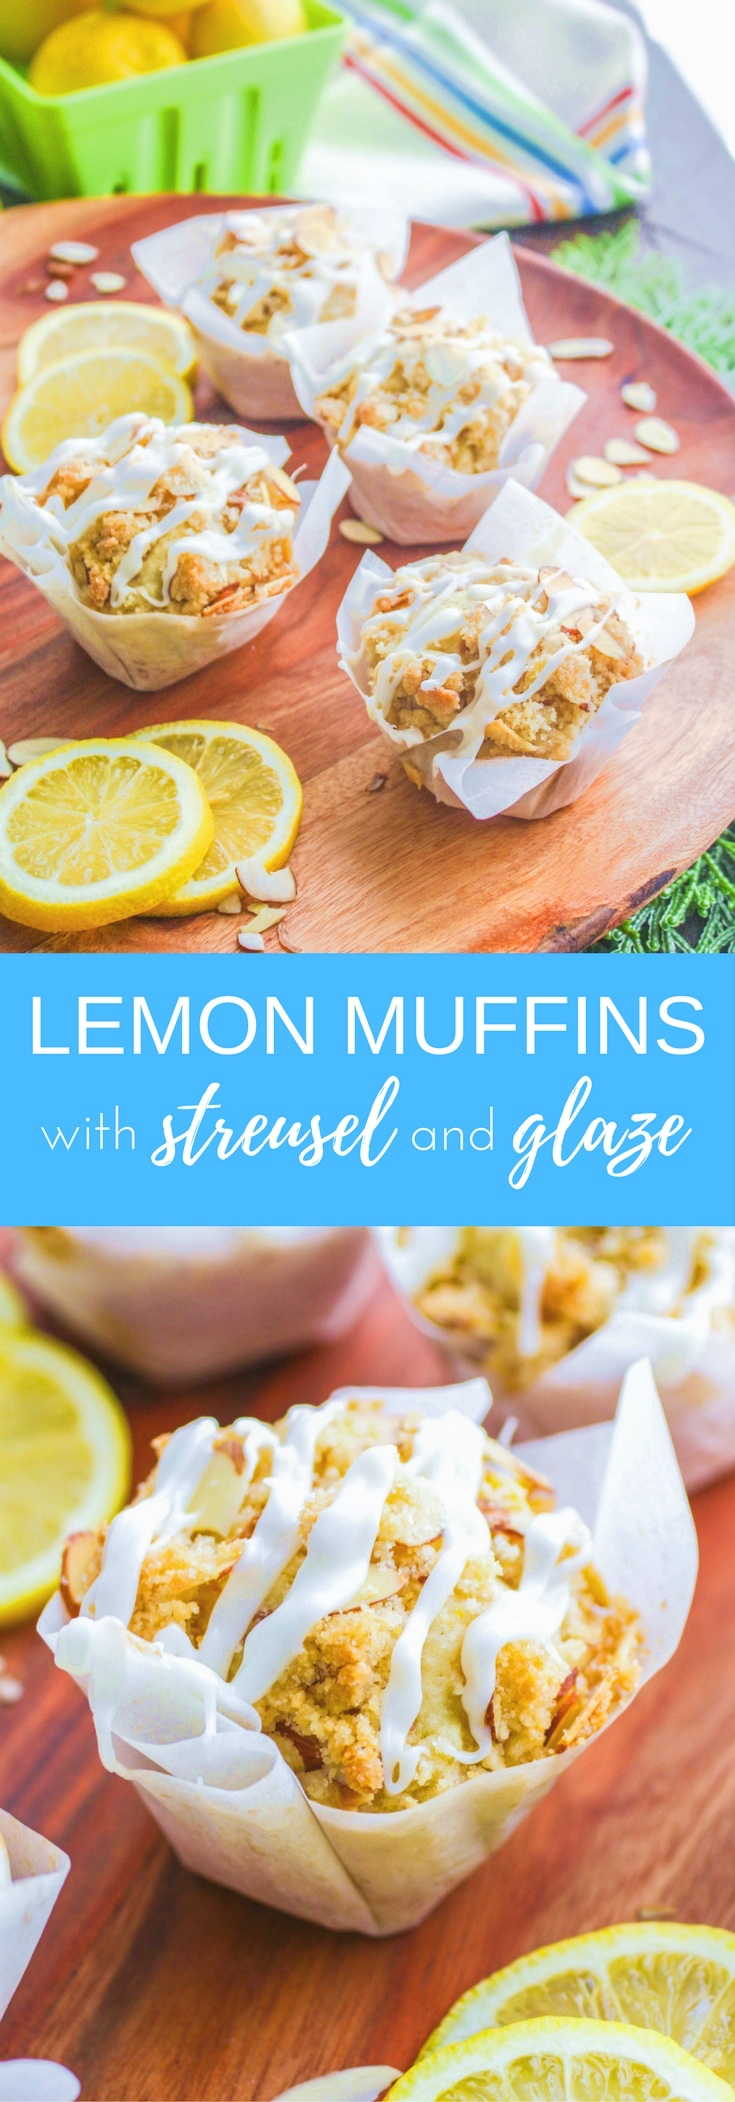 Lemon Muffins with Almond Streusel and Glaze are a lovey start to your day. Lemon muffins are bright and delicious!